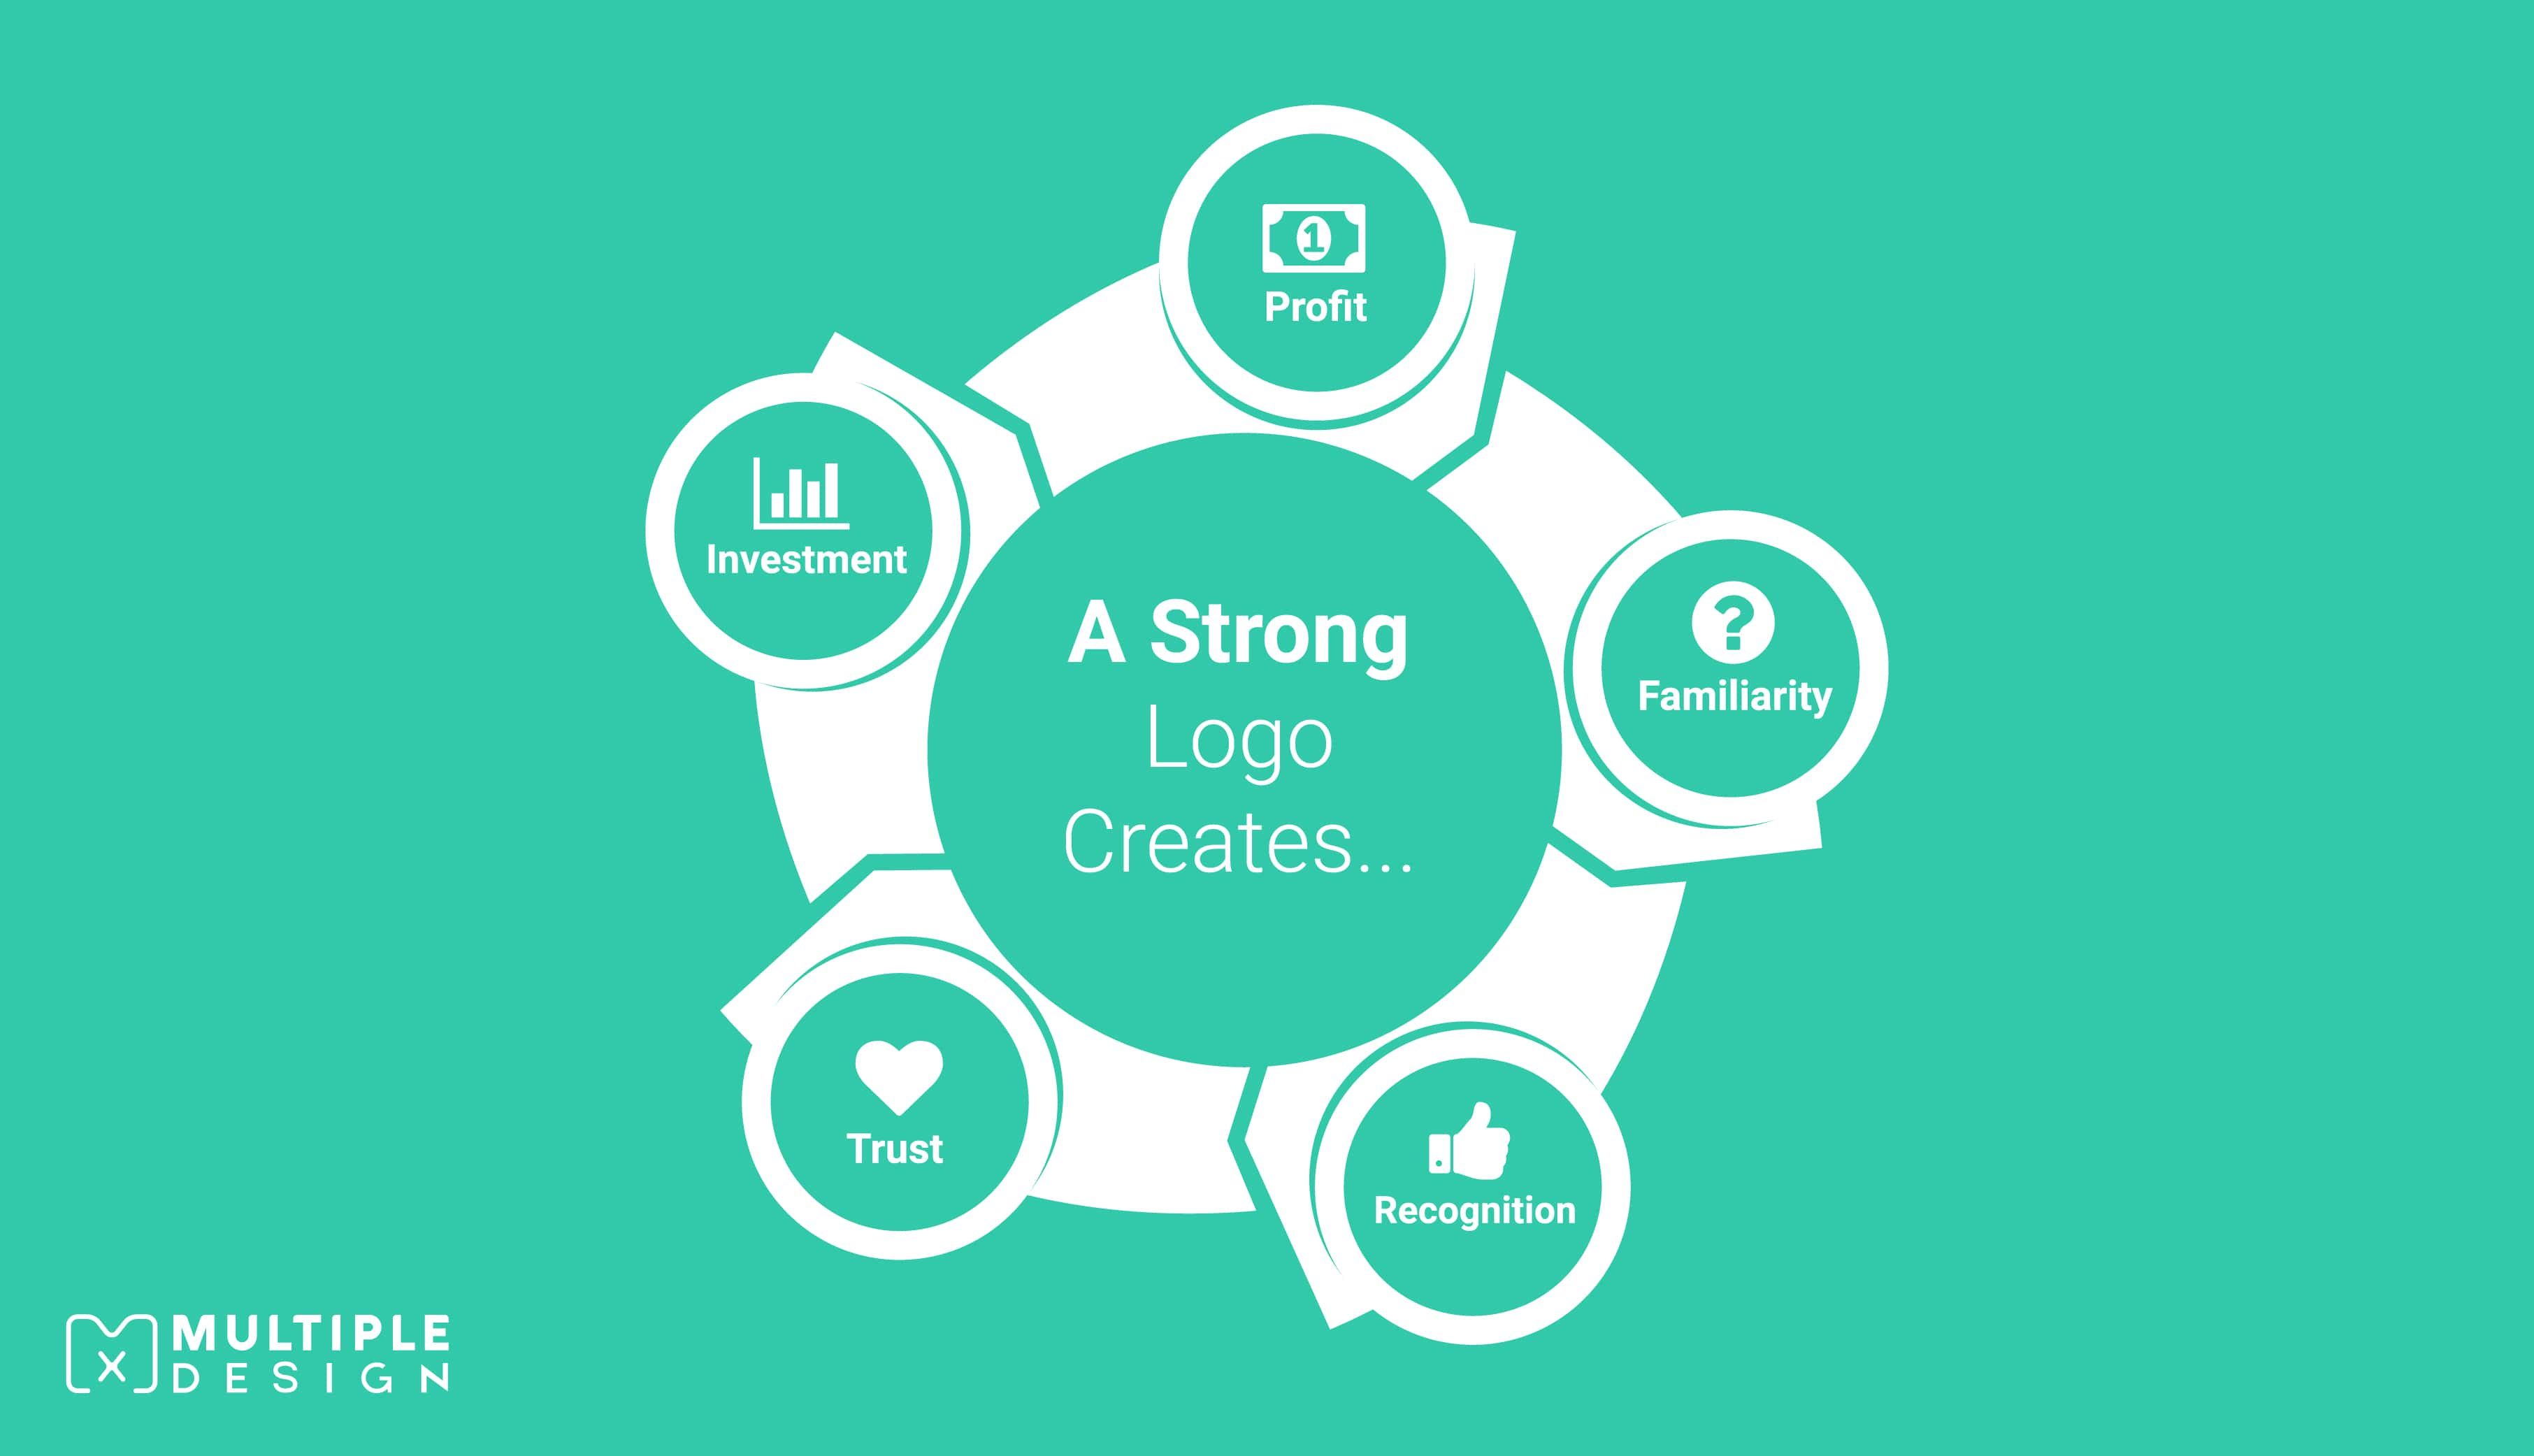 A strong logo creates, profit, familiarity, recognition, trust, investment